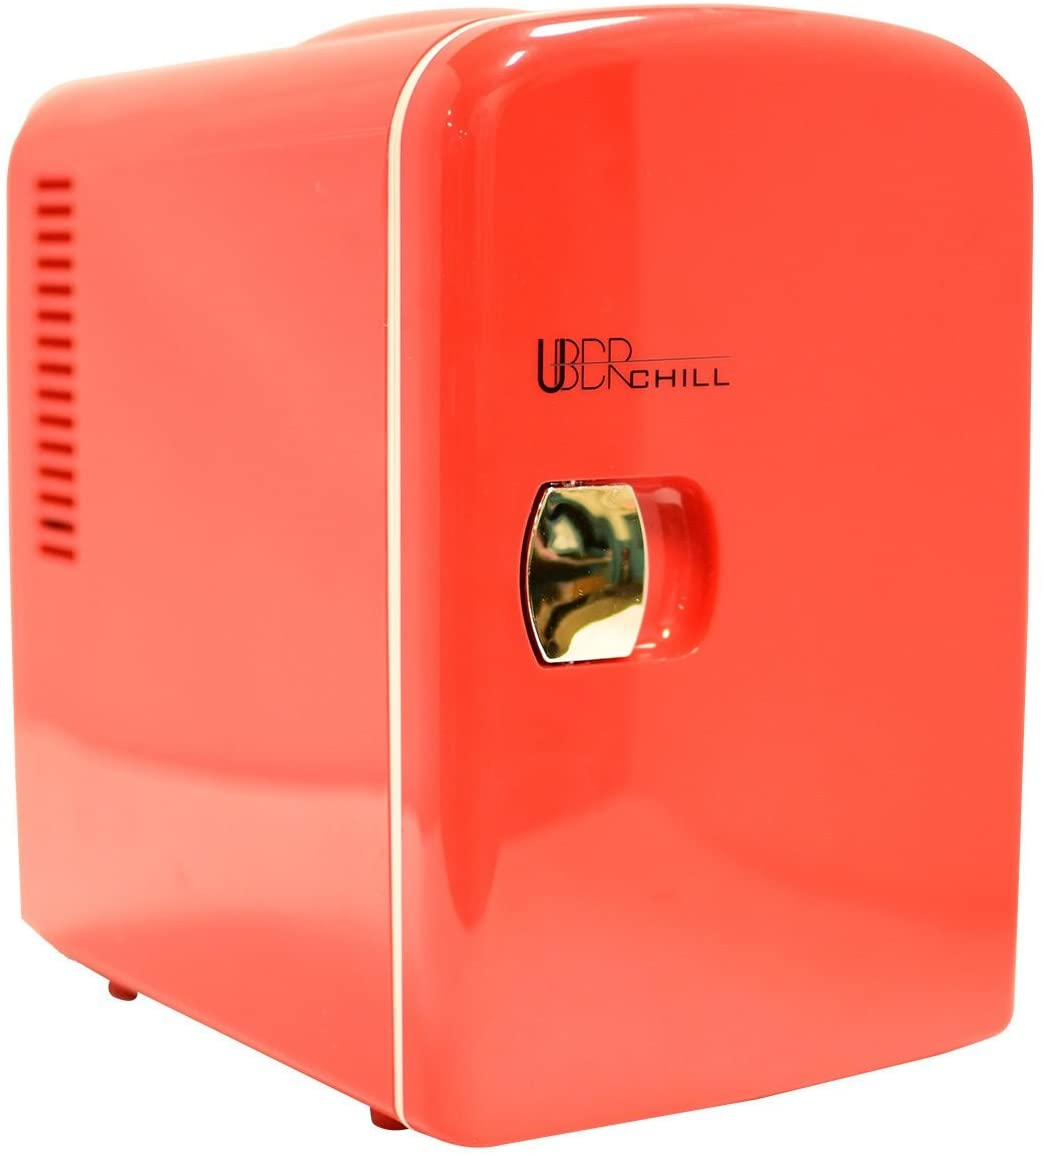 Uber Appliance UB-CH1 Uber Chill Mini Fridge 6-can portable thermoelectric cooler and warmer mini fridge for bedroom, office or dorm